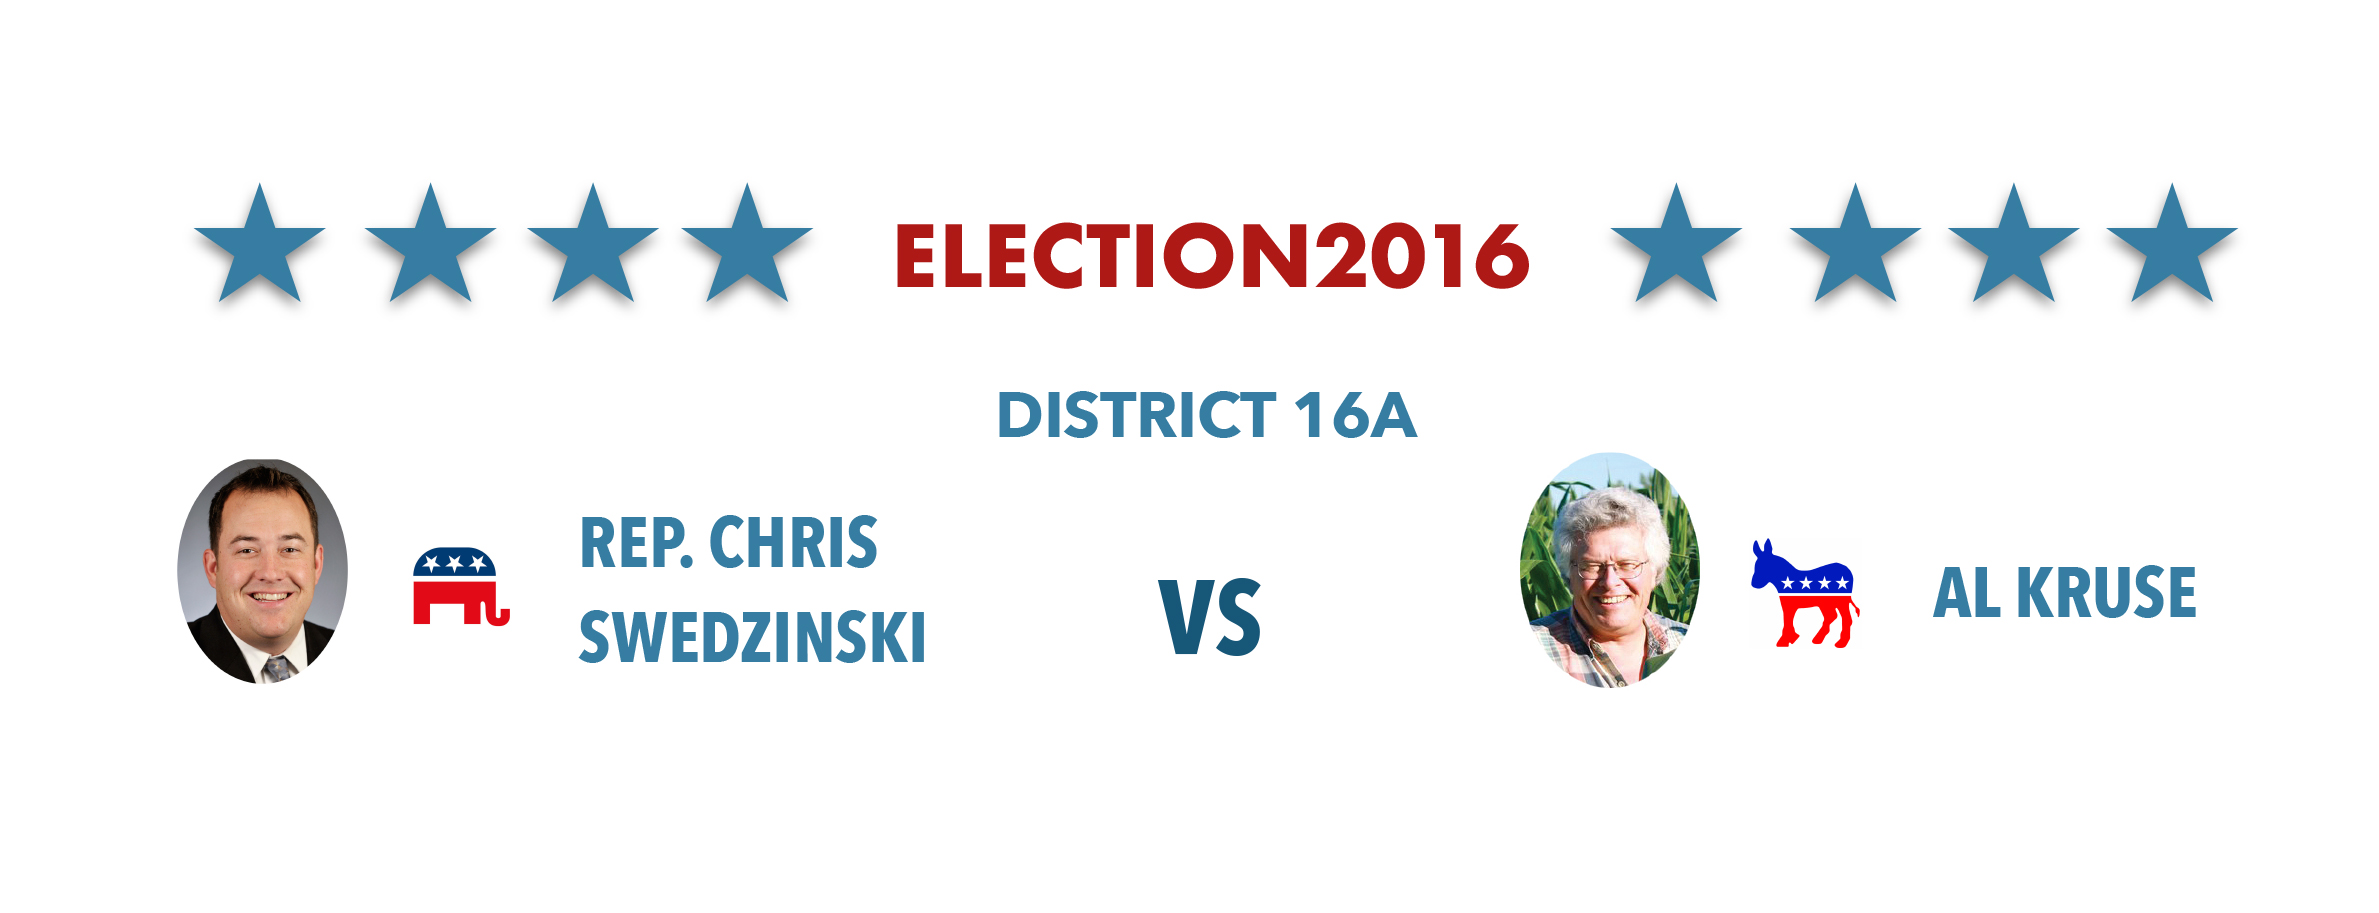 Rep. Chris Swedzinski vs Al Kruse web